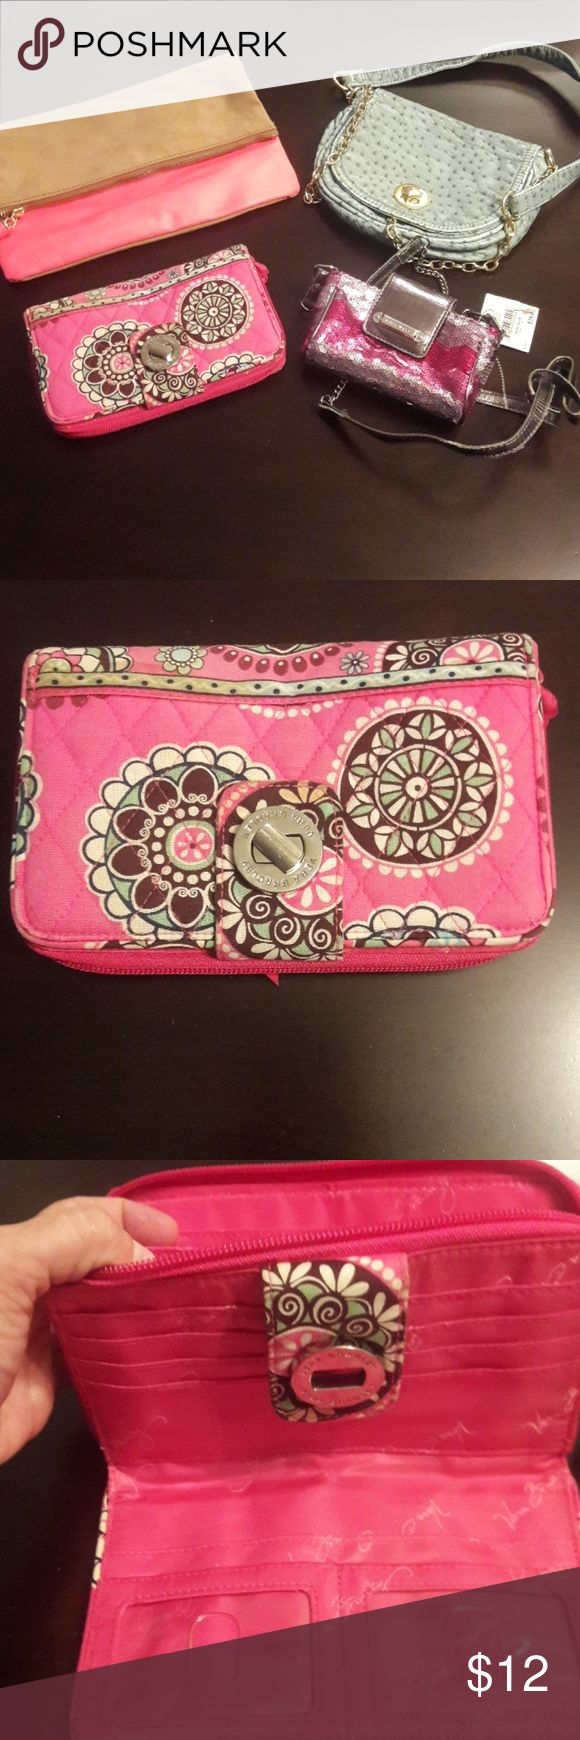 Vera Bradley, Nine West, H&M, Forever21 Bag Lot Vera Bradley, Nine West, H&M, Forever21 Bag/Wallet lot,  Vera Bradley Wallet, in good used condition Nine West Sequin , w/ tags , ok condition  H&M pink & tan clutch,  good condition Forever 21 Teal crossbody bag , good condition   I'm selling in a lot, will not split up. Vera Bradley Bags